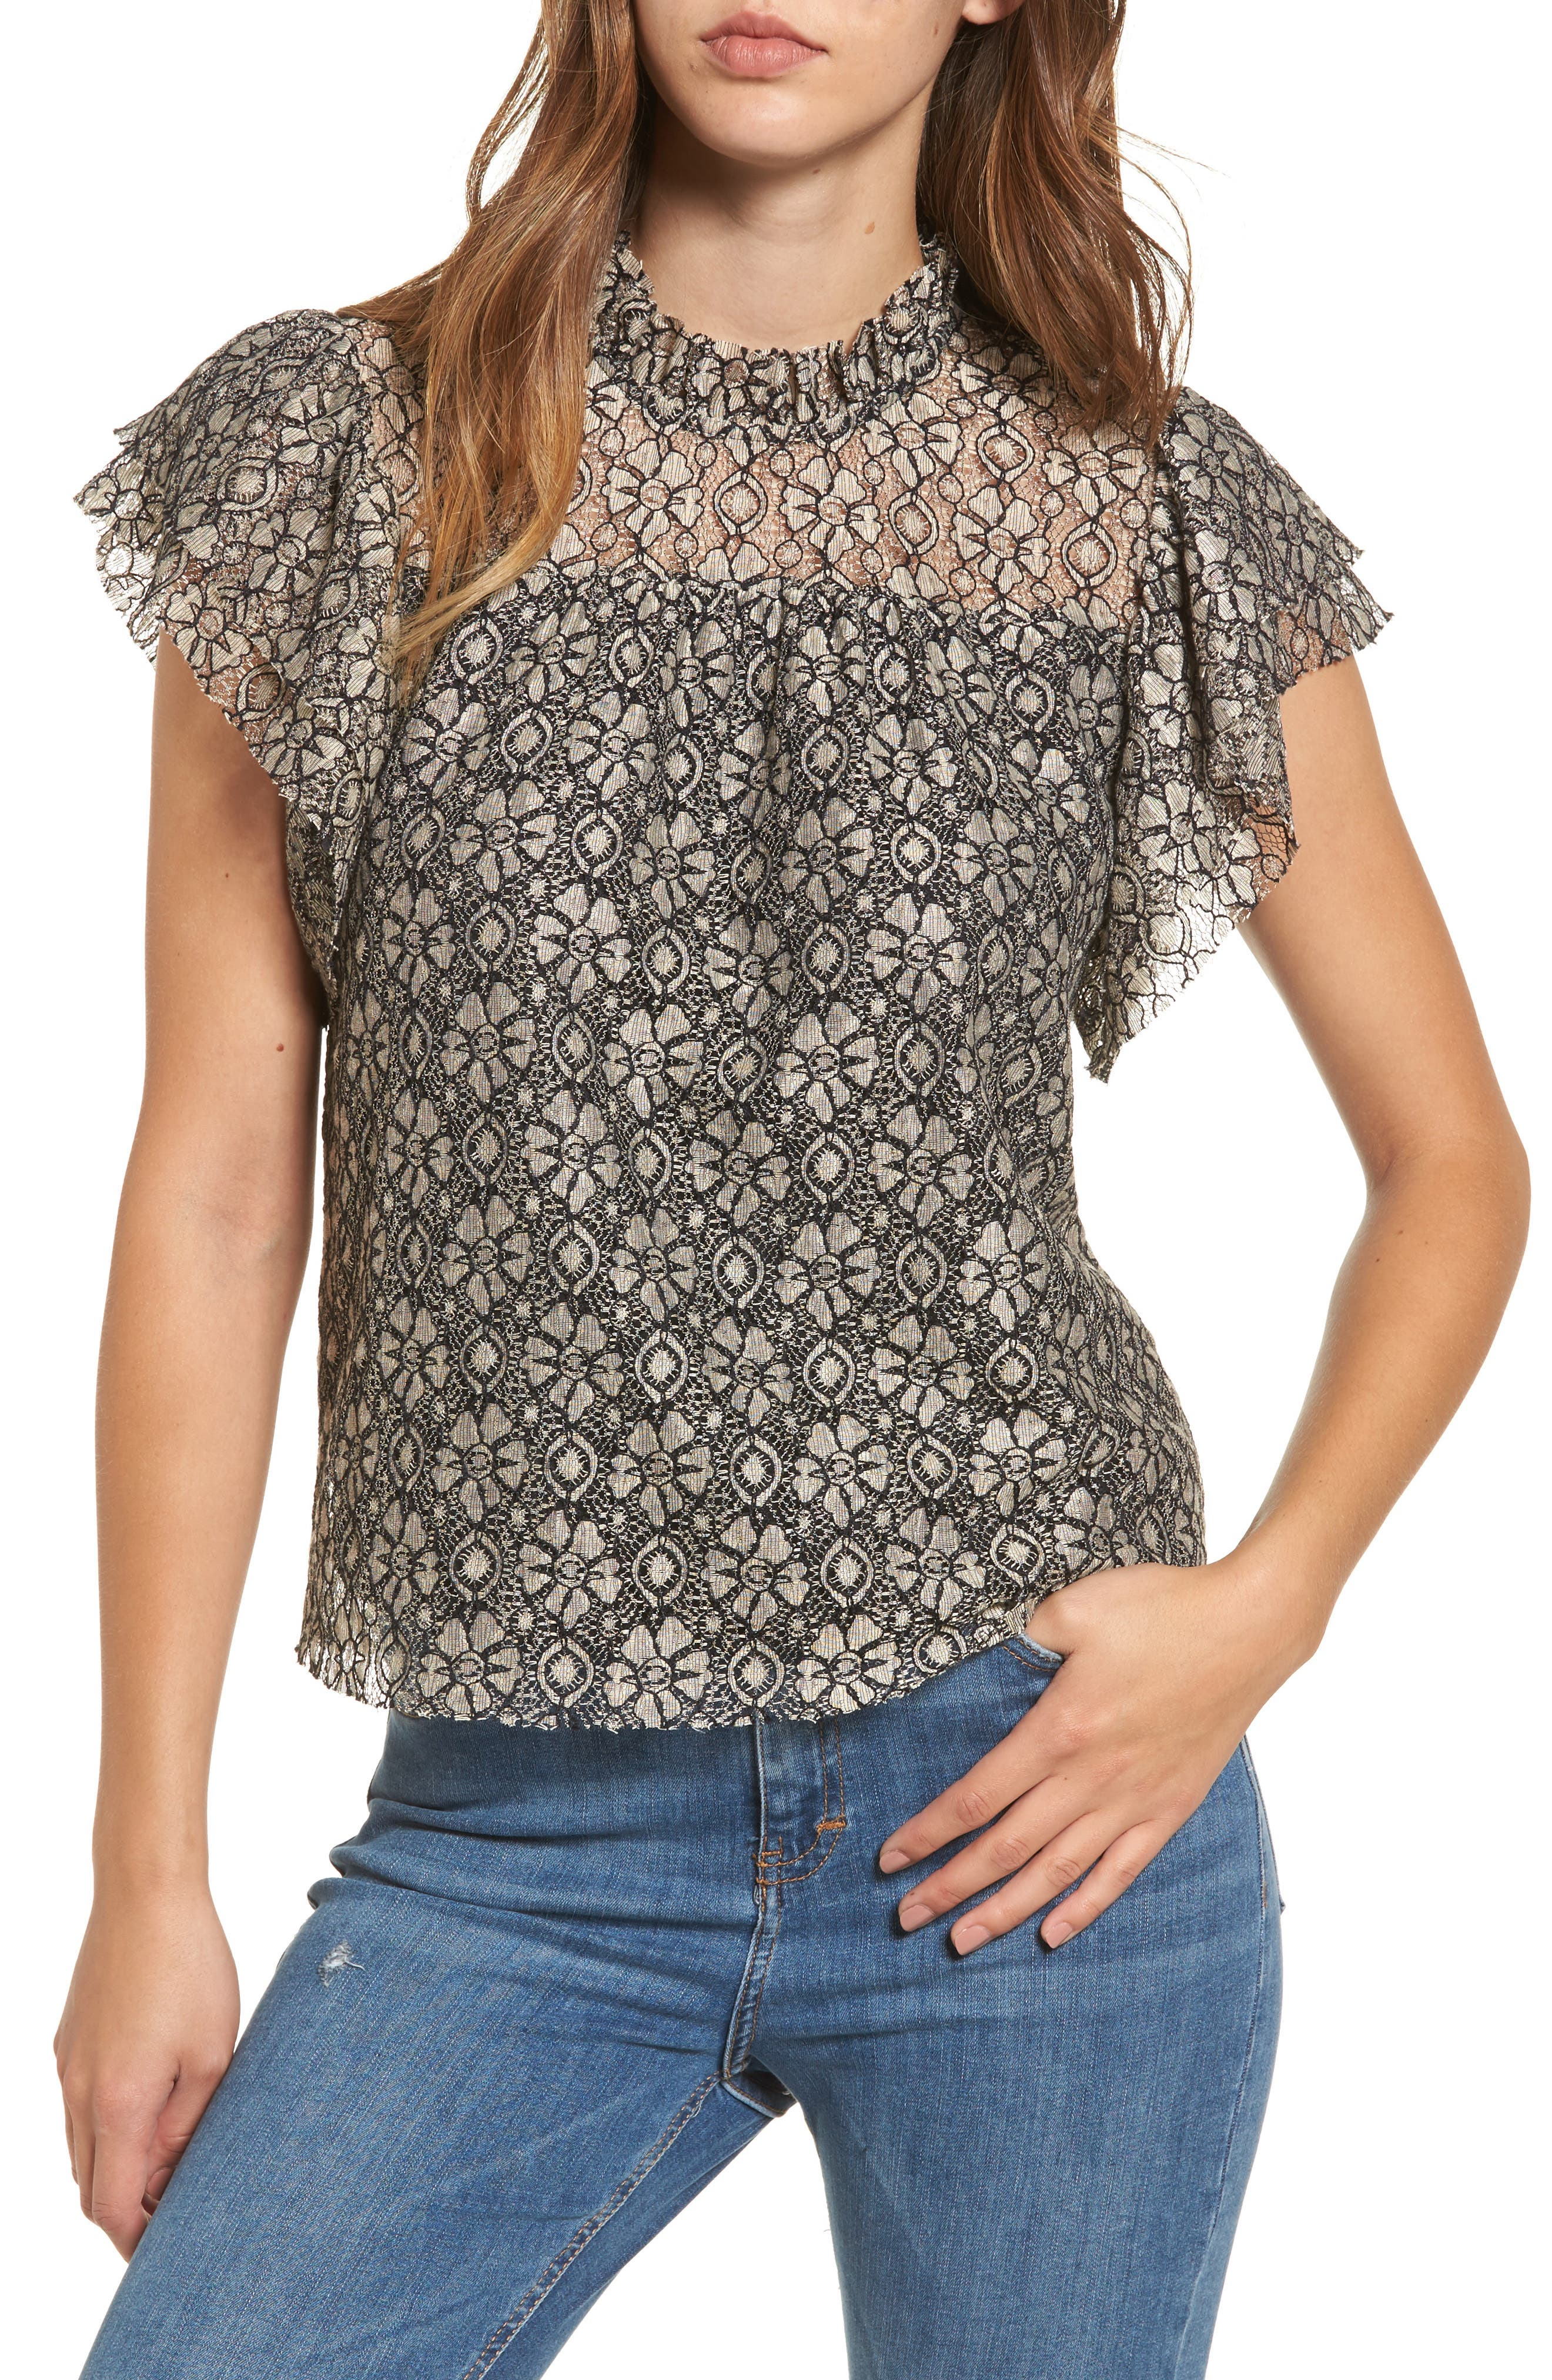 Ruffle Lace Top,                         Main,                         color, Taupe/ Black